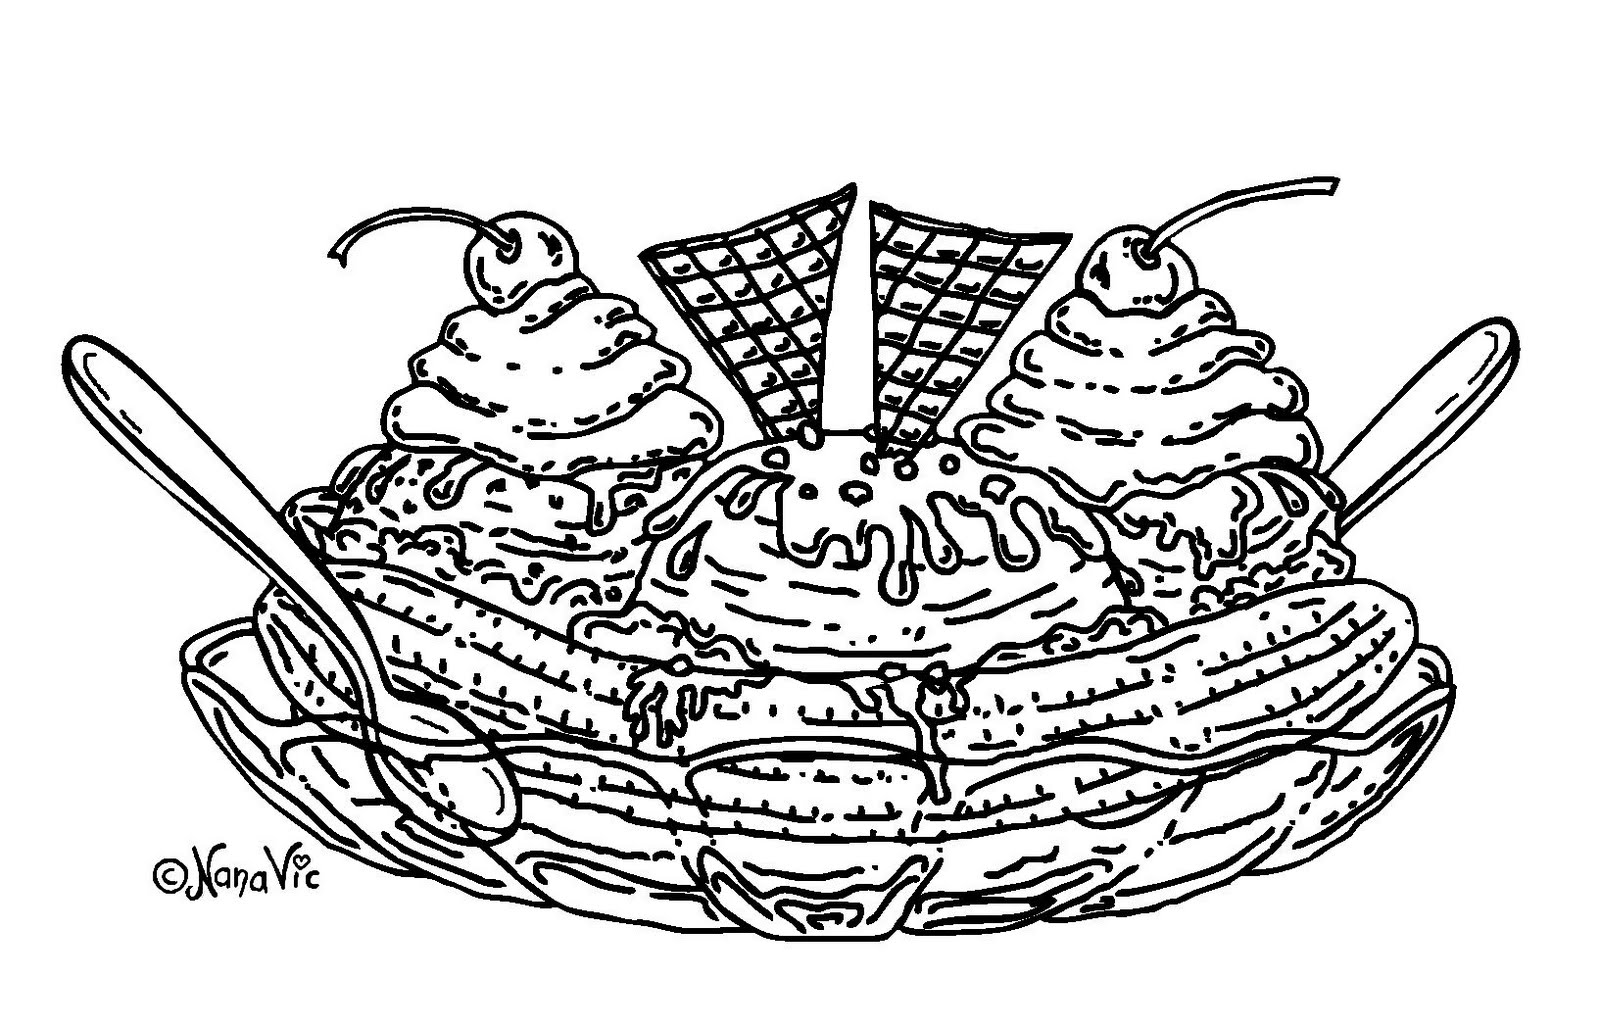 Ice cream parlor coloring pages download and print for free for Free coloring pages of ice cream